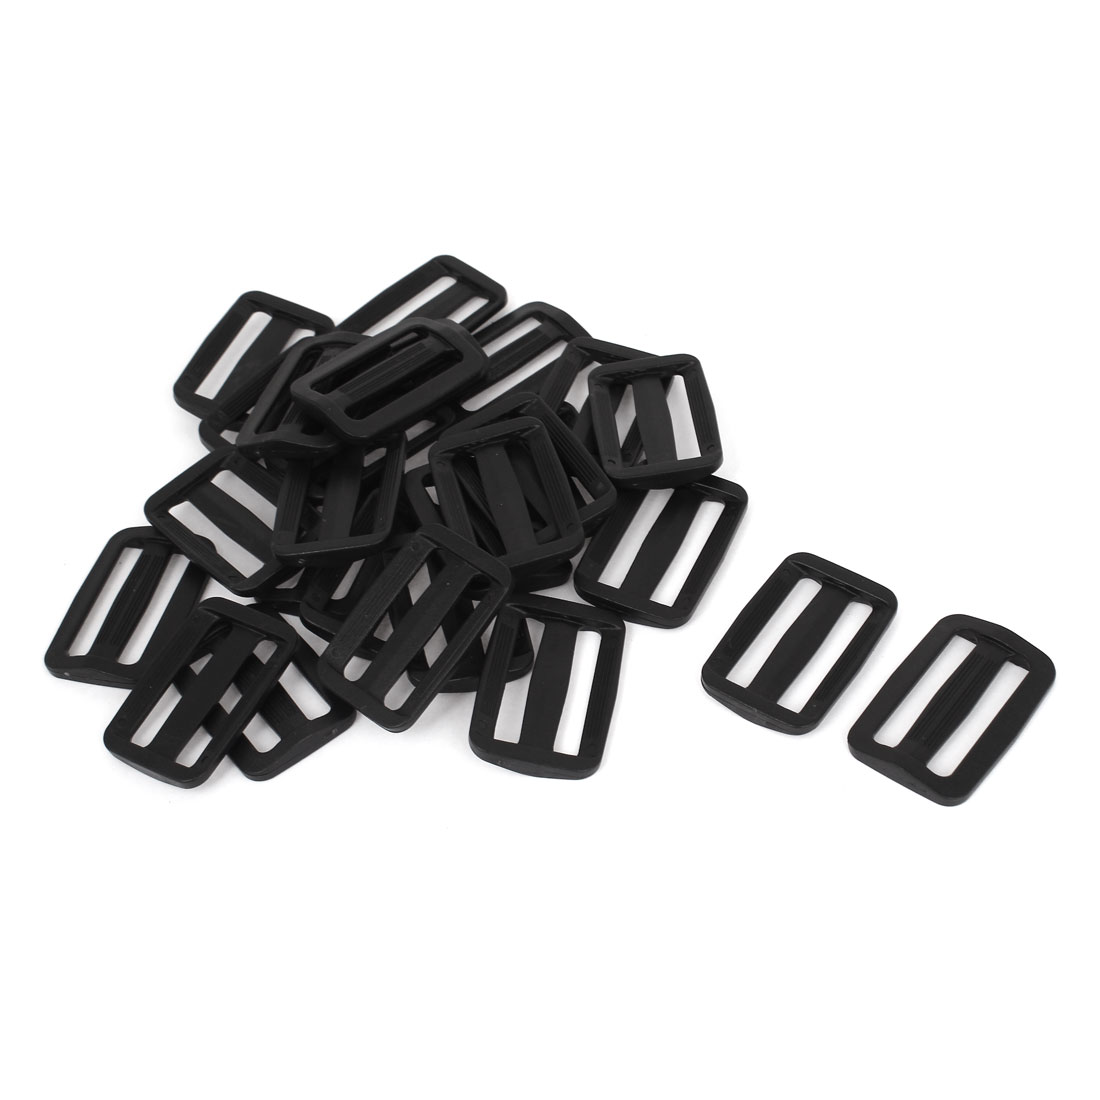 30 Pcs Black Hard Plastic Slide Rectangle Buckle Luggage Bag Replacement 3.8CM